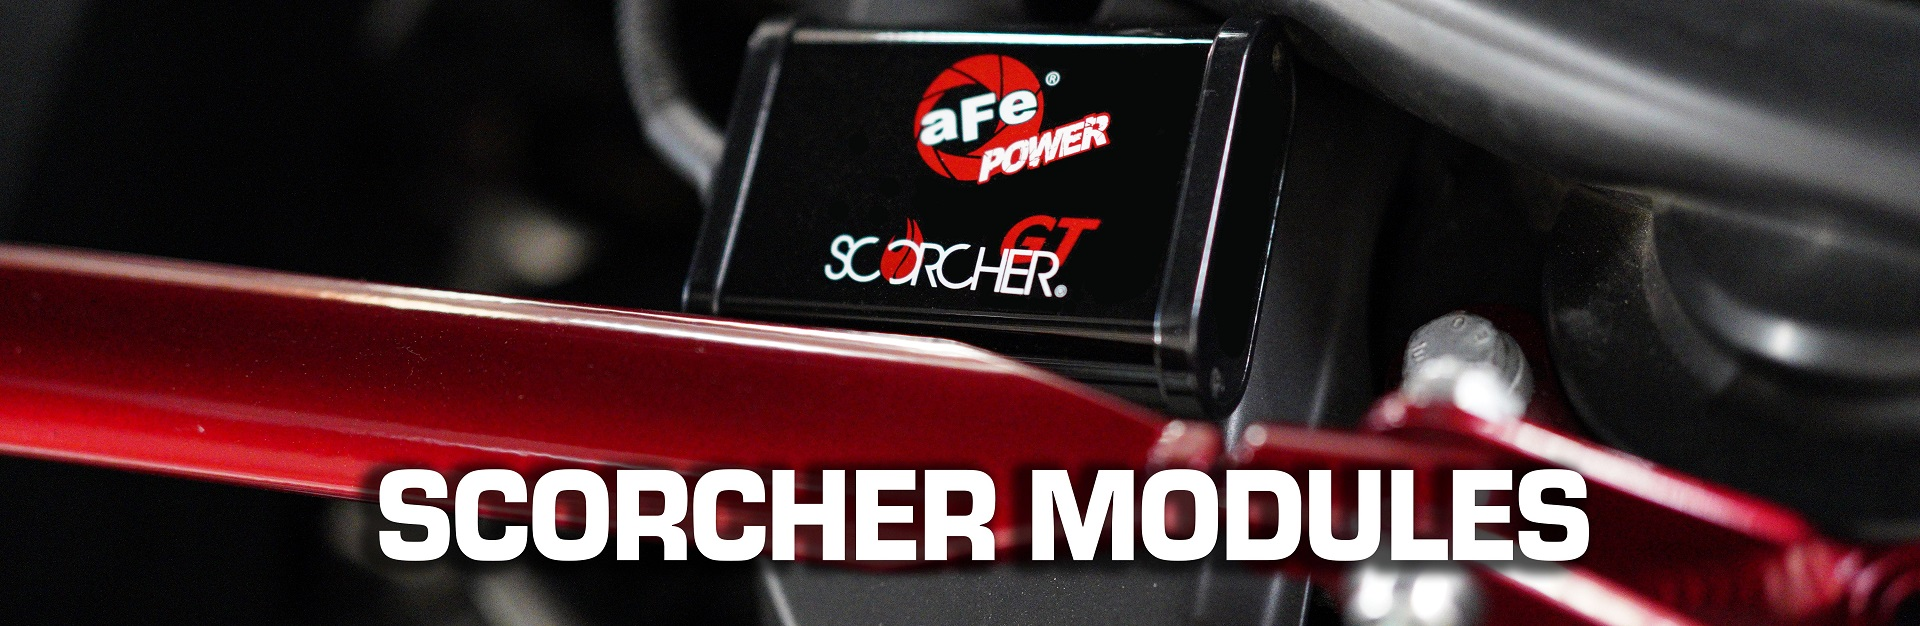 aFe POWER Scorcher Power Modules